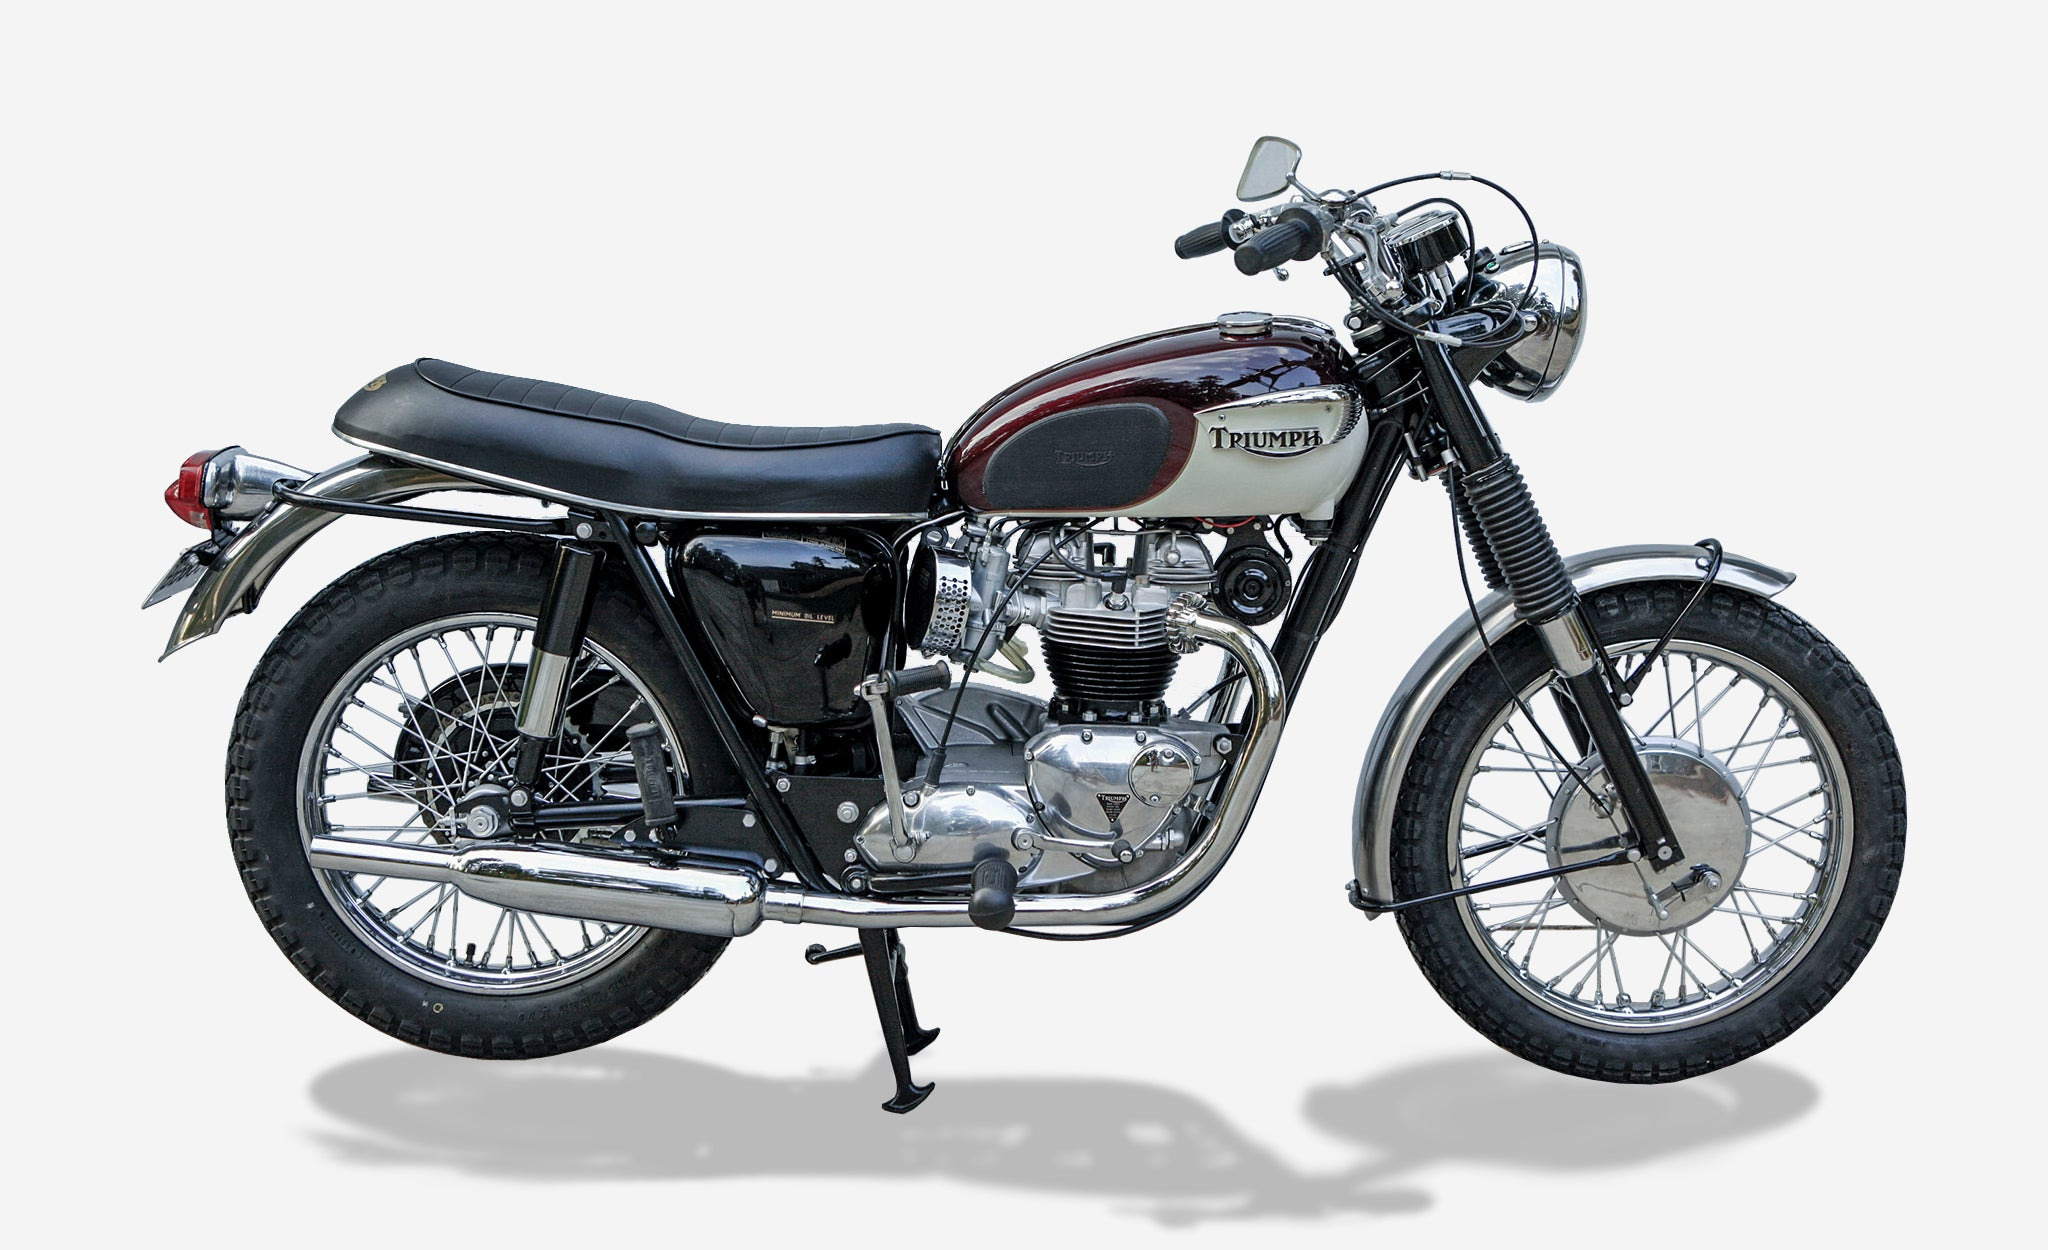 Triumph Bonneville British motorcycle